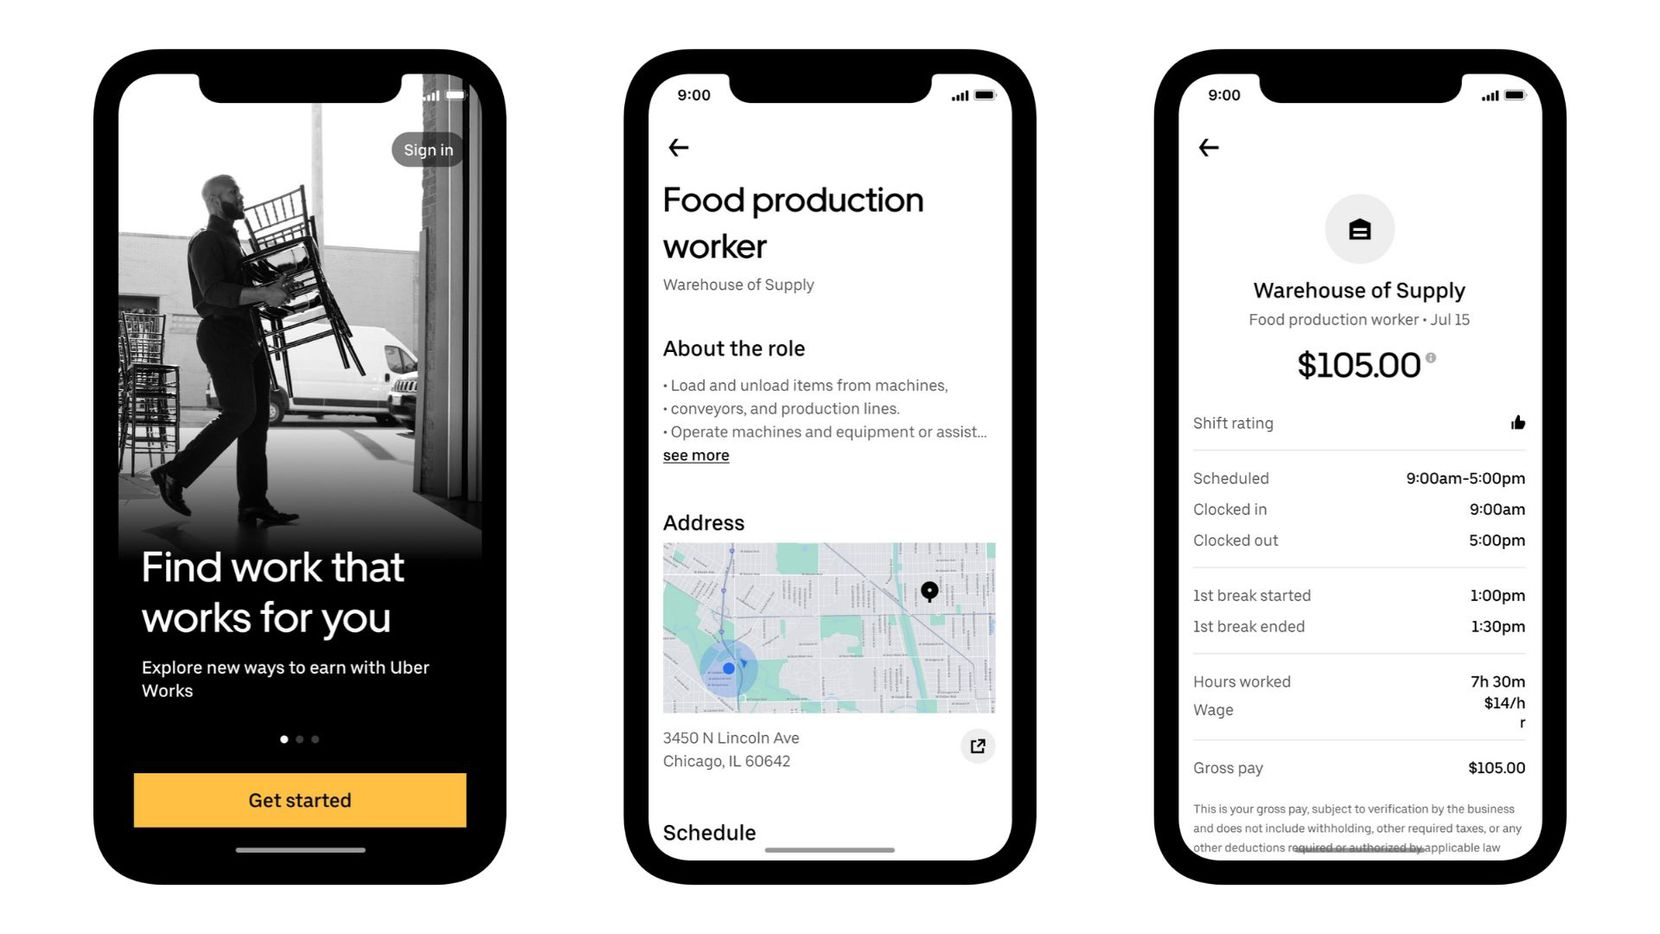 Uber Works launches in Dallas Tuesday. The new app from Uber matches people looking for work with businesses offering shifts. Uber Works already launched in Chicago and Miami late last year.